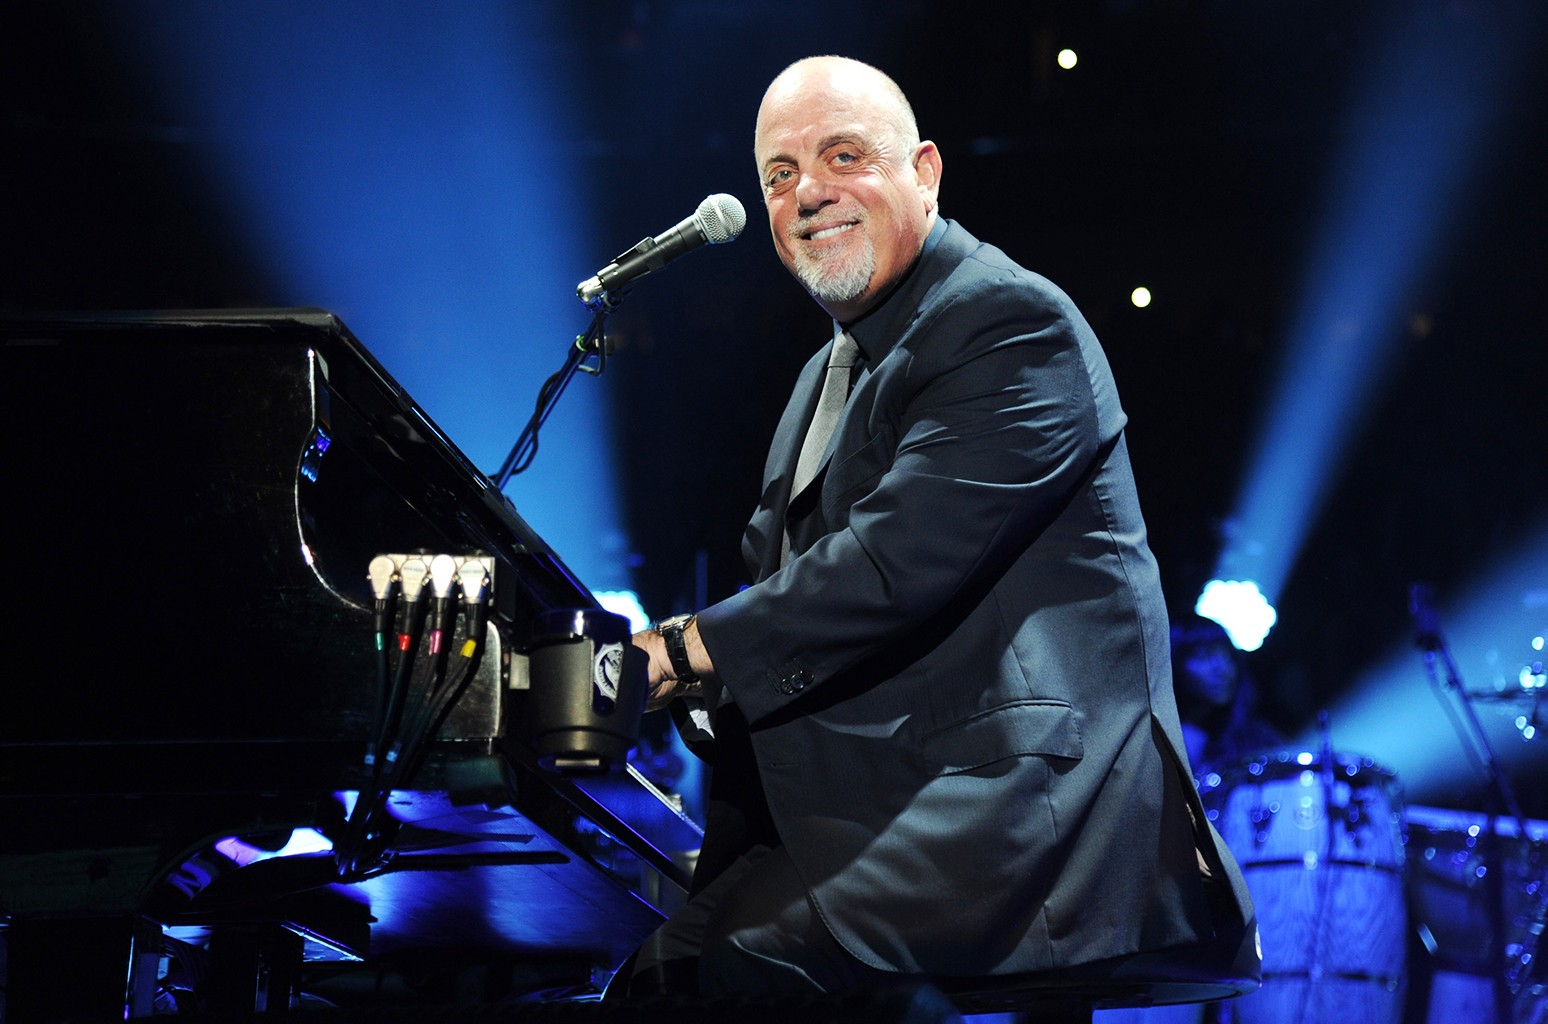 Billy Joel performs onstage celebrating his 65th birthday at Madison Square Garden on May 9, 2014 in New York City.